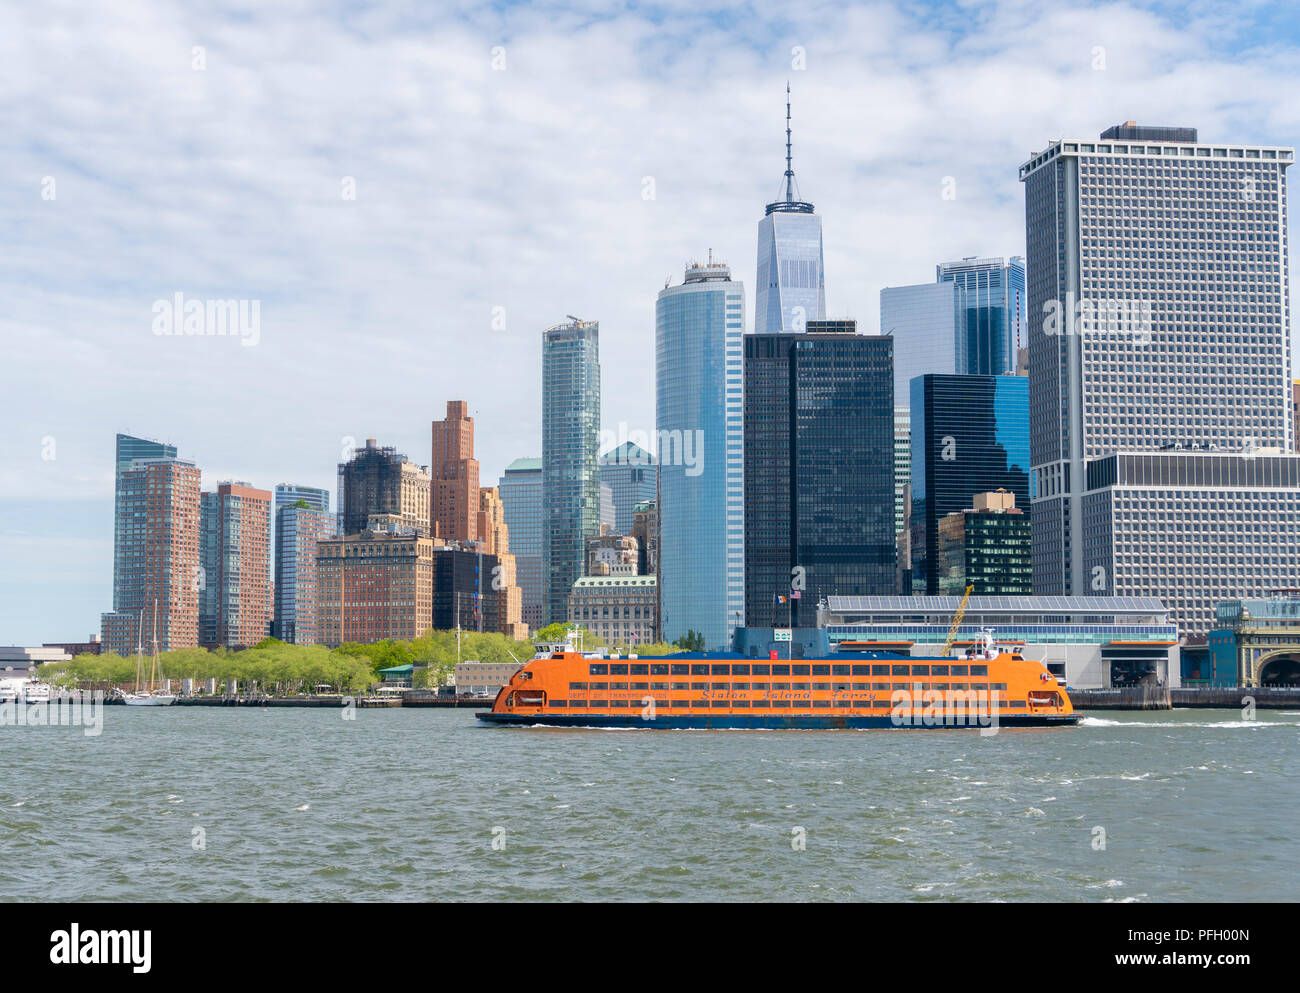 Staten Island Ferry departing from Lower Manhattan in New York City - Stock Image